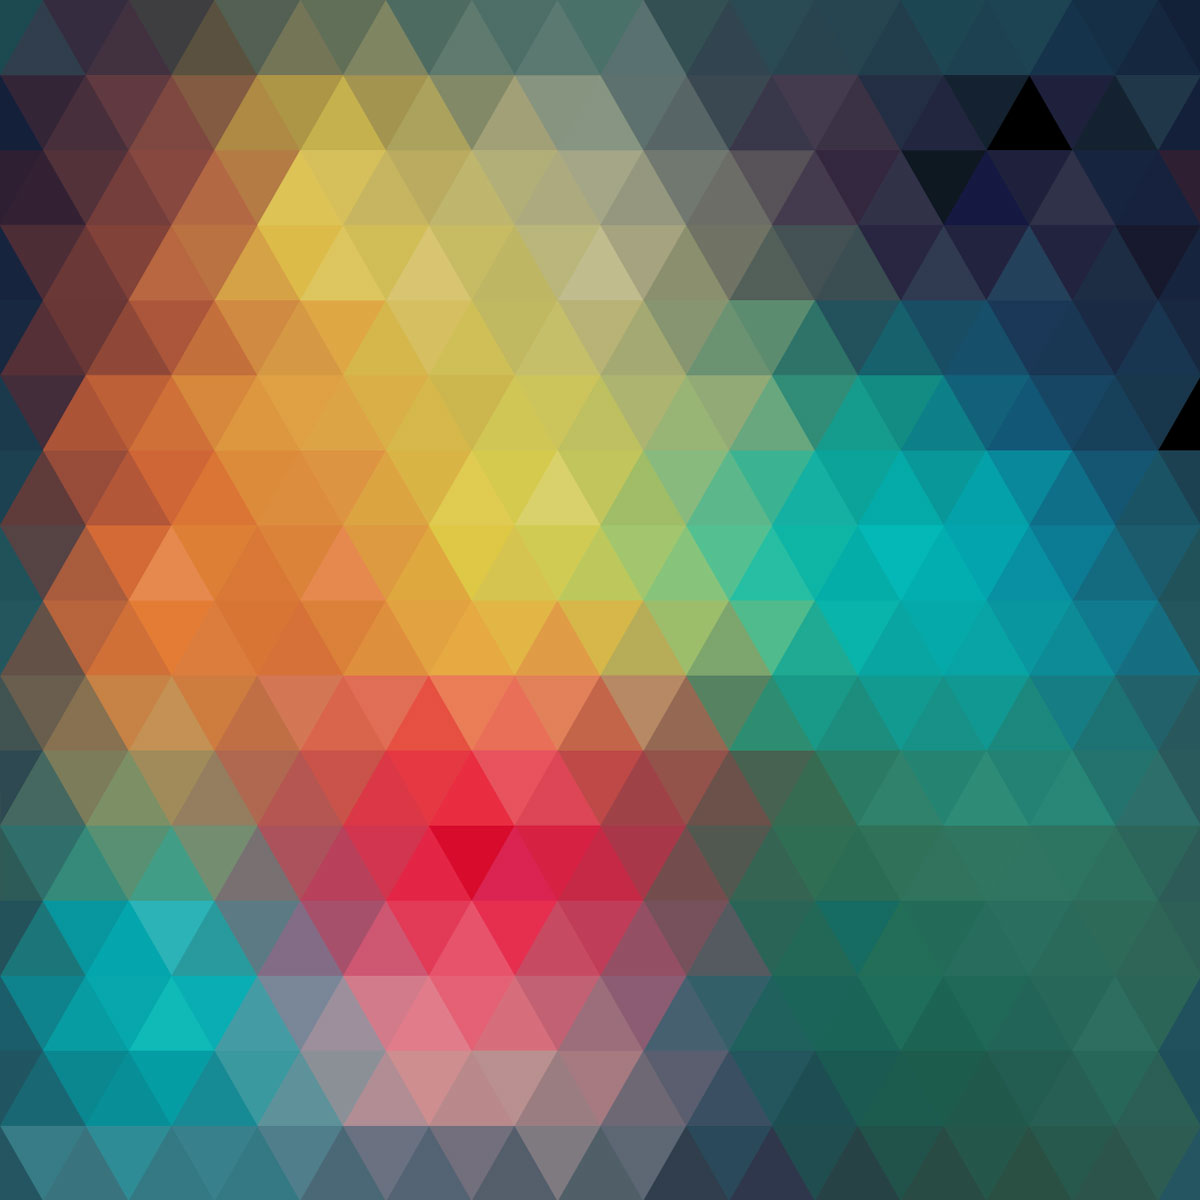 Geometric Abstract Colorful